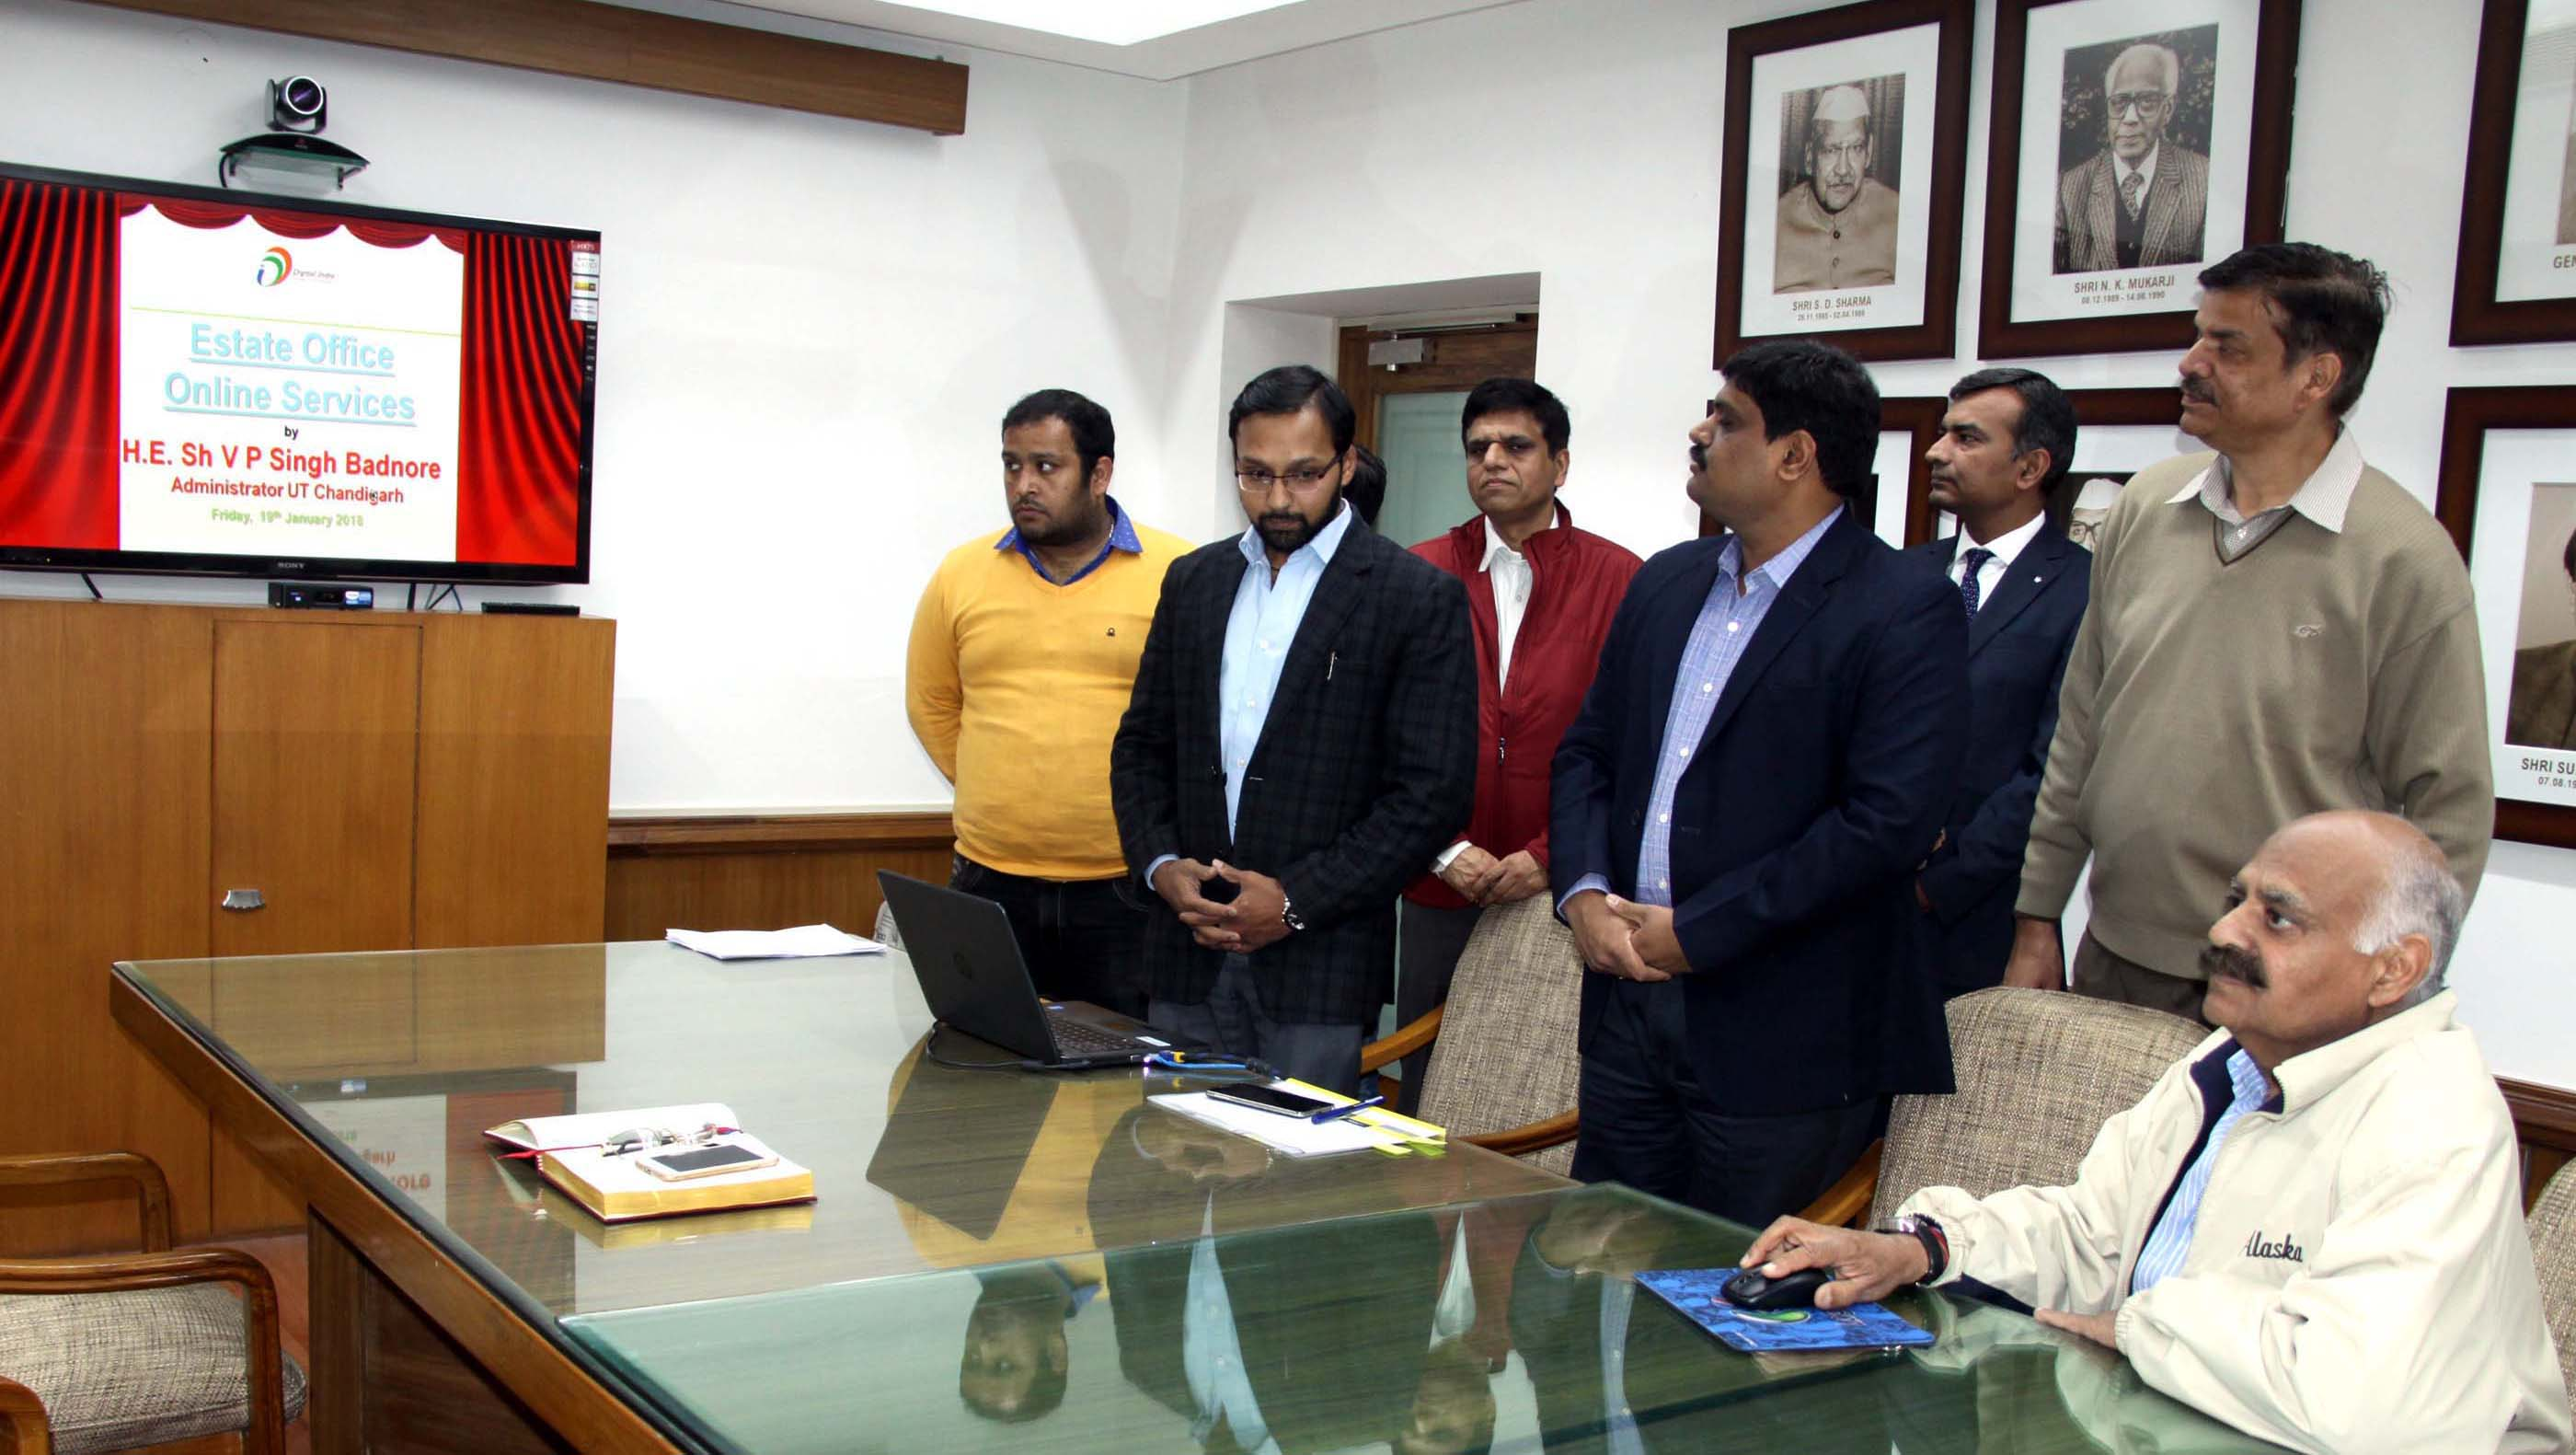 "The Governor of Punjab and Administrator, UT, Chandigarh, Shri V.P. Singh Badnore Launching the ""On-line Appointment System"" for various services of Estate Office, U.T. Chandigarh at Punjab Raj Bhawan, Chandigarh on Friday, January 19, 2018."